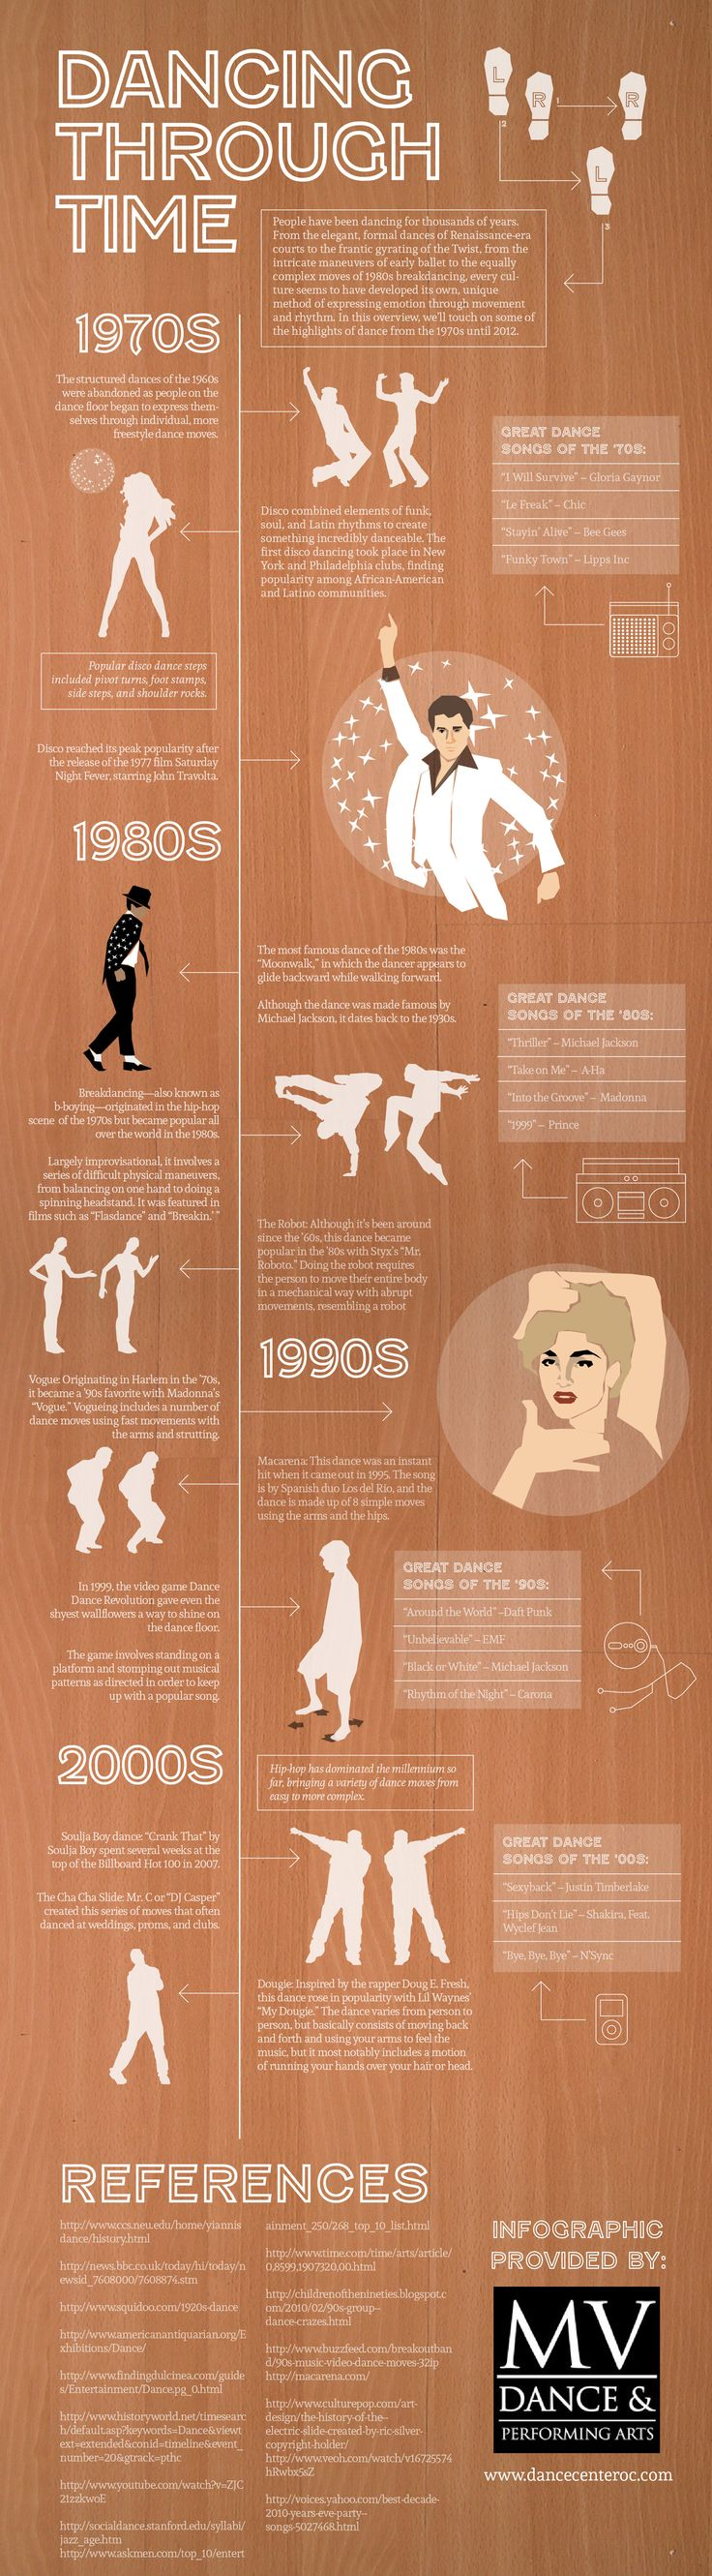 Dancing Style Trends Throughout History